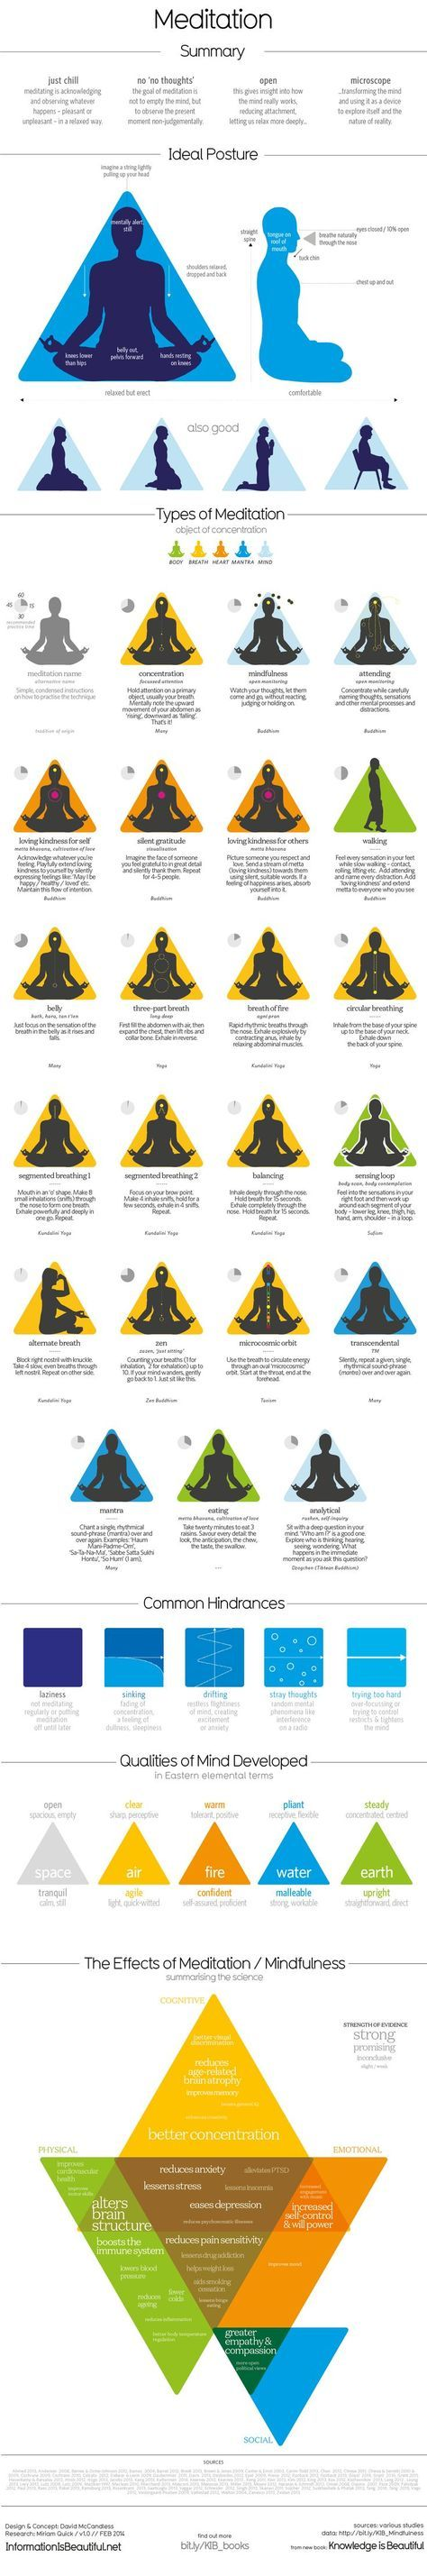 What is Meditation / Mindfulness? How do you do it? What does the science say about its effects?